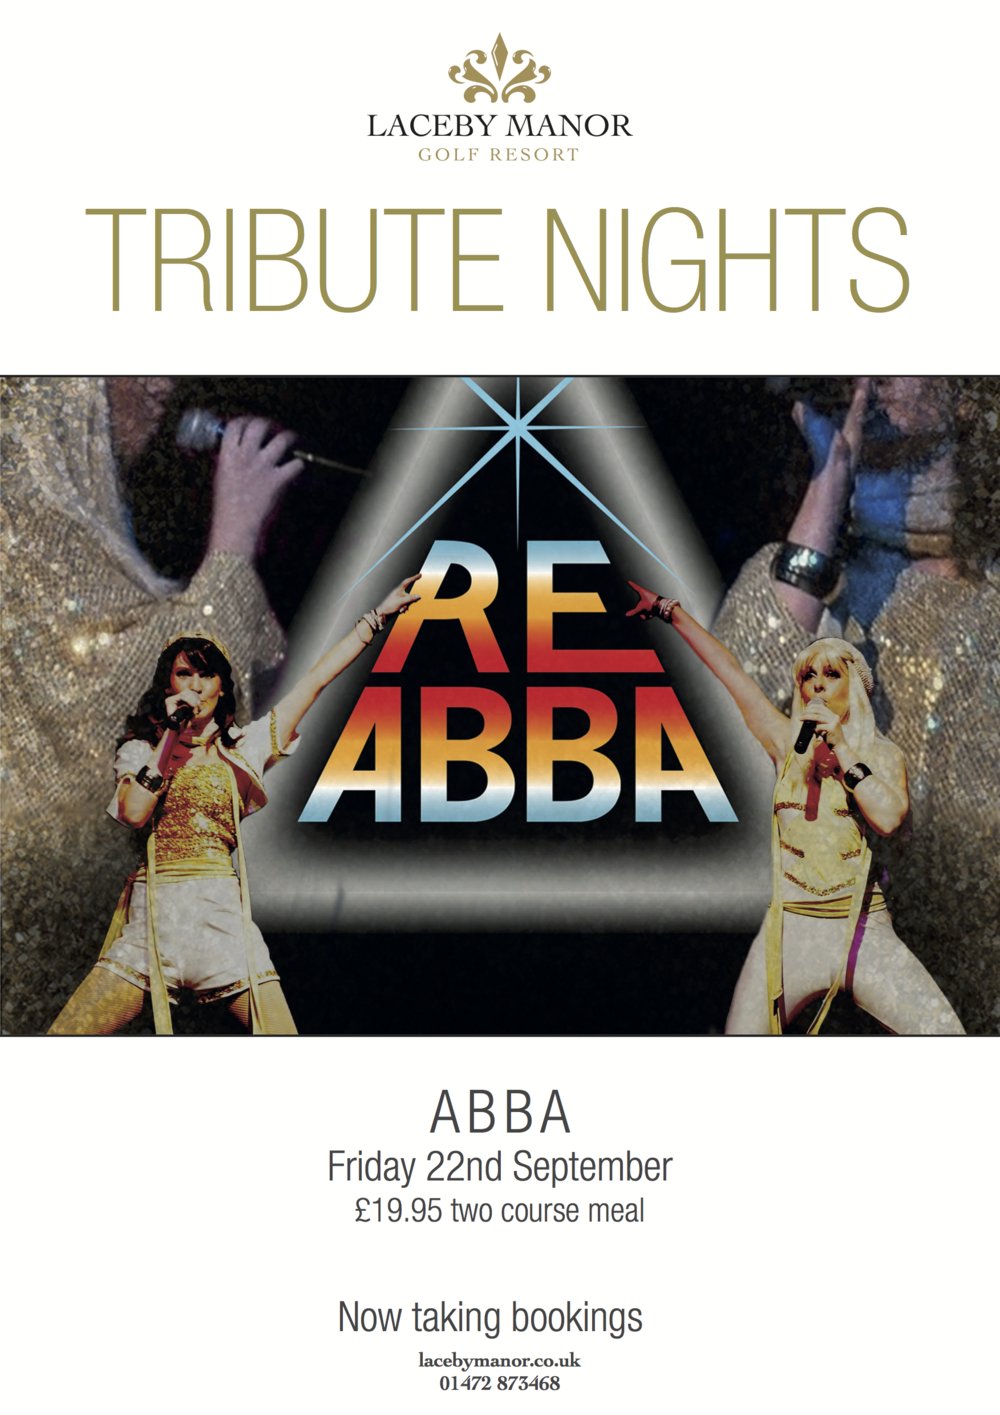 laceby-manor-golf-club-abba-tribute-night.png